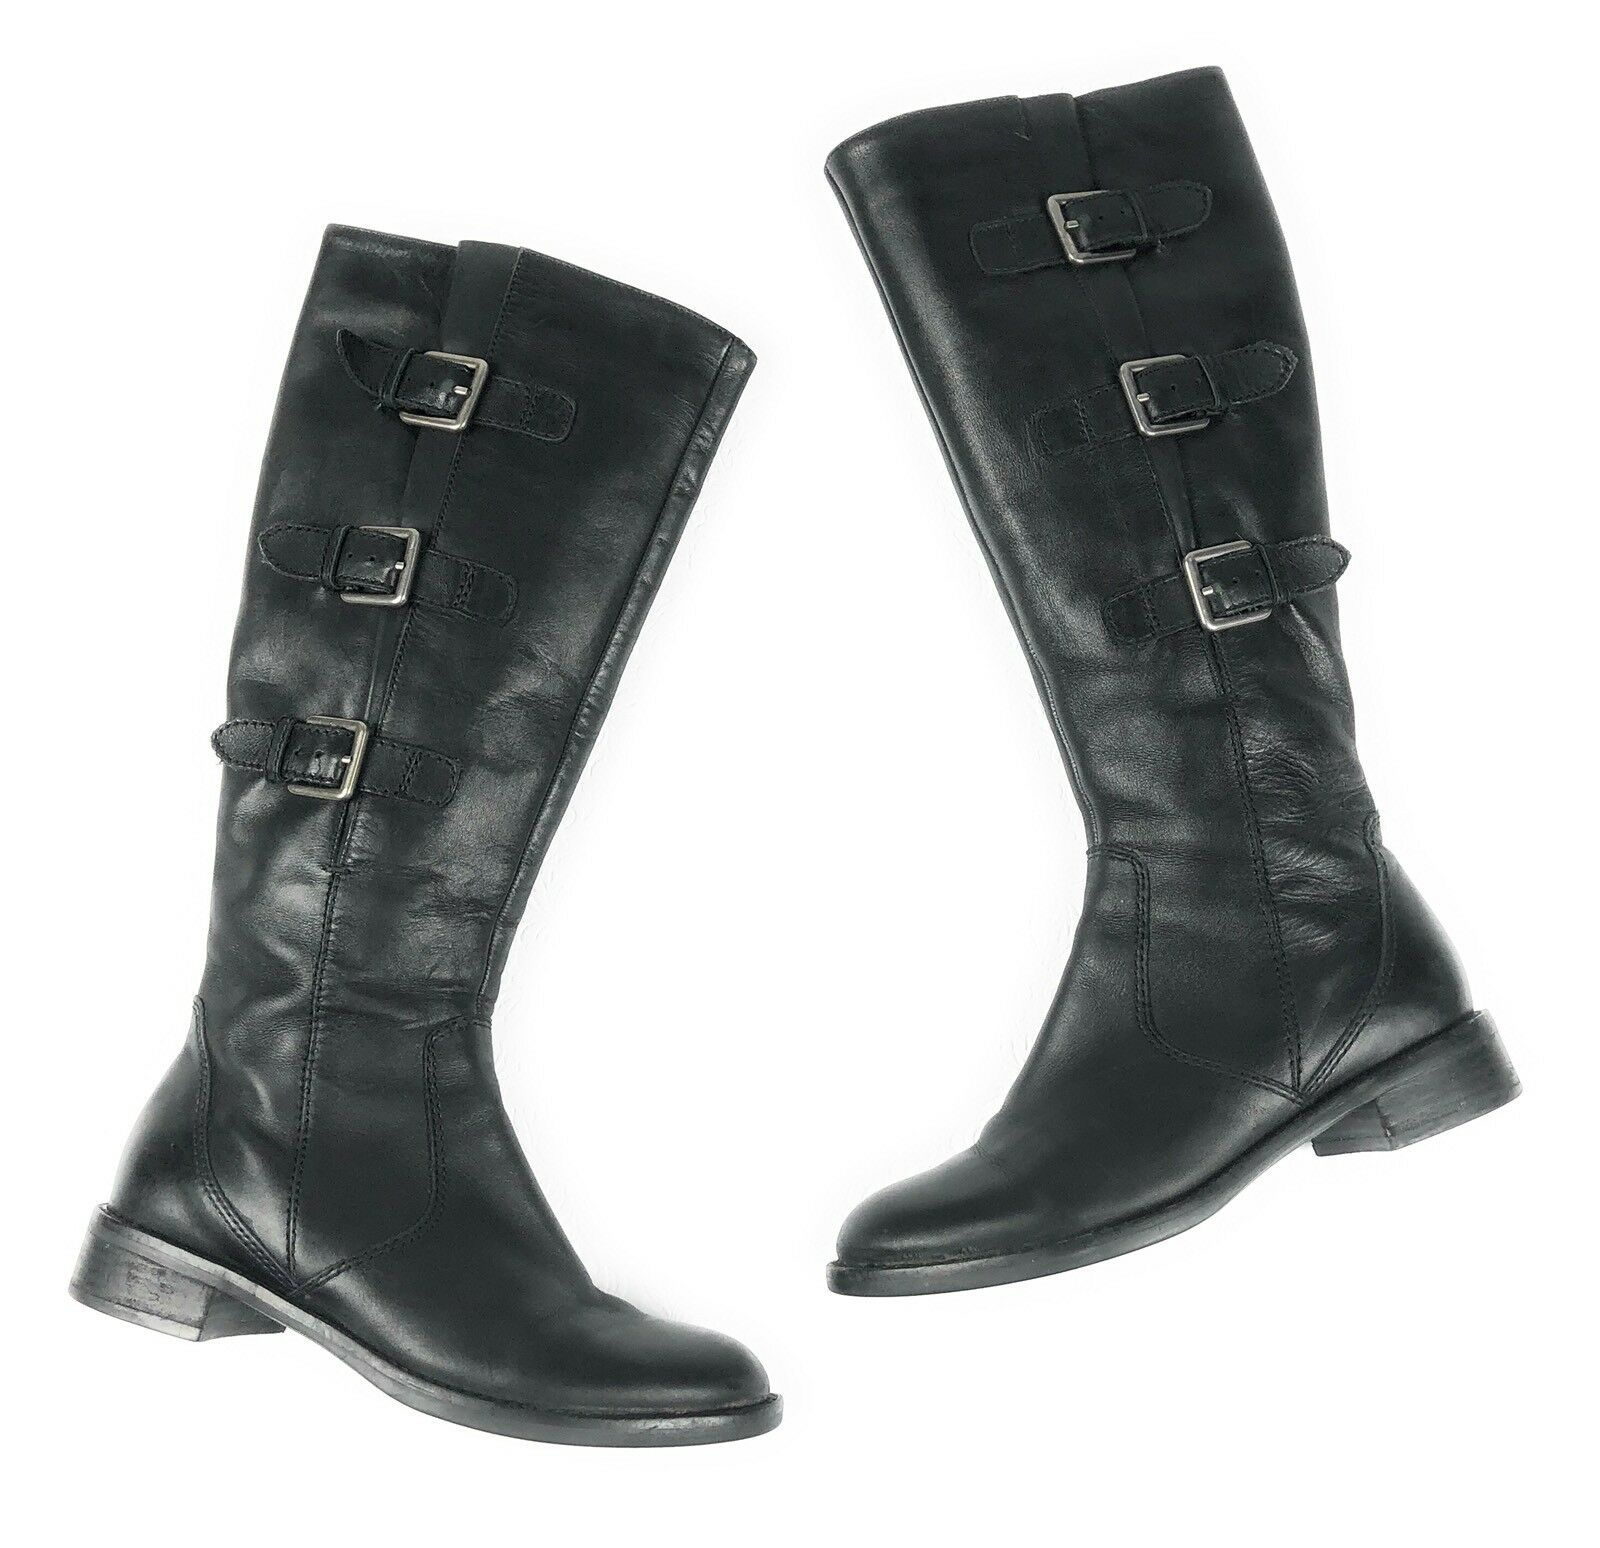 ECCO Hobart knee high tall tall tall boots 36 5 - 5.5  black leather tall zip buckles s47 bf66d3